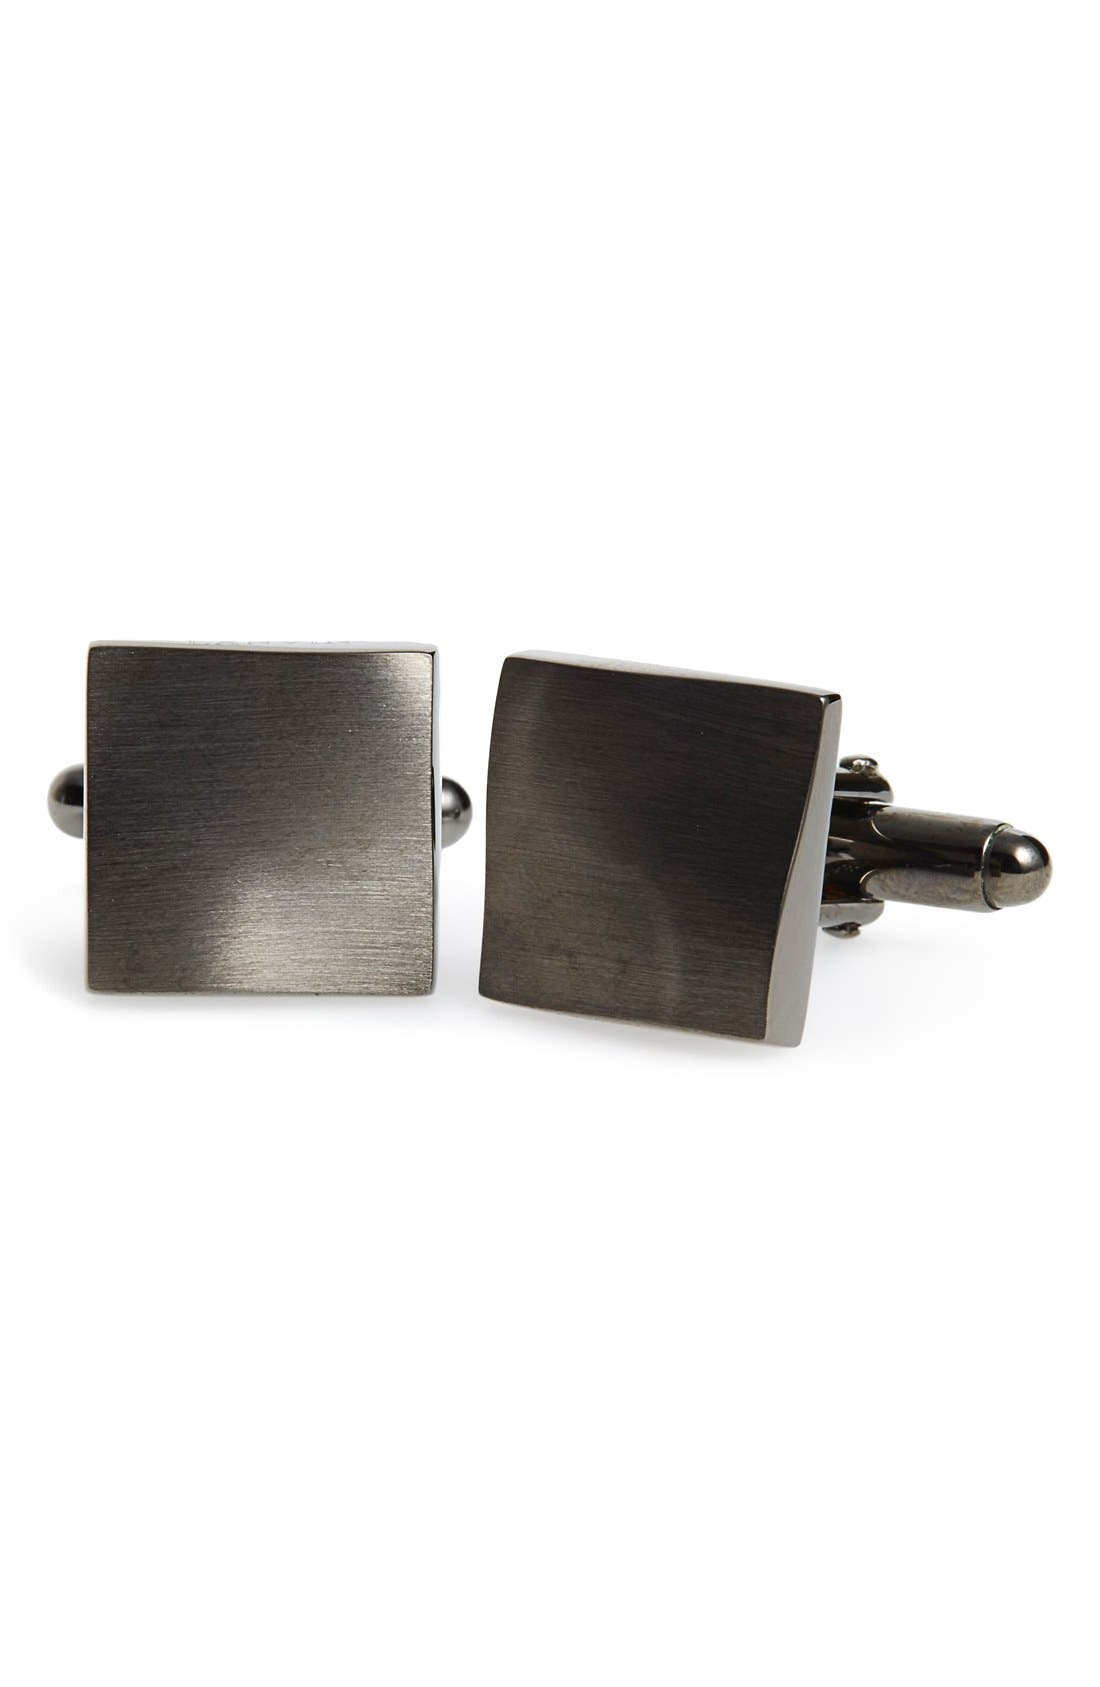 'Twisted Plaque' Square Cuff Links,                             Main thumbnail 1, color,                             Gunmetal